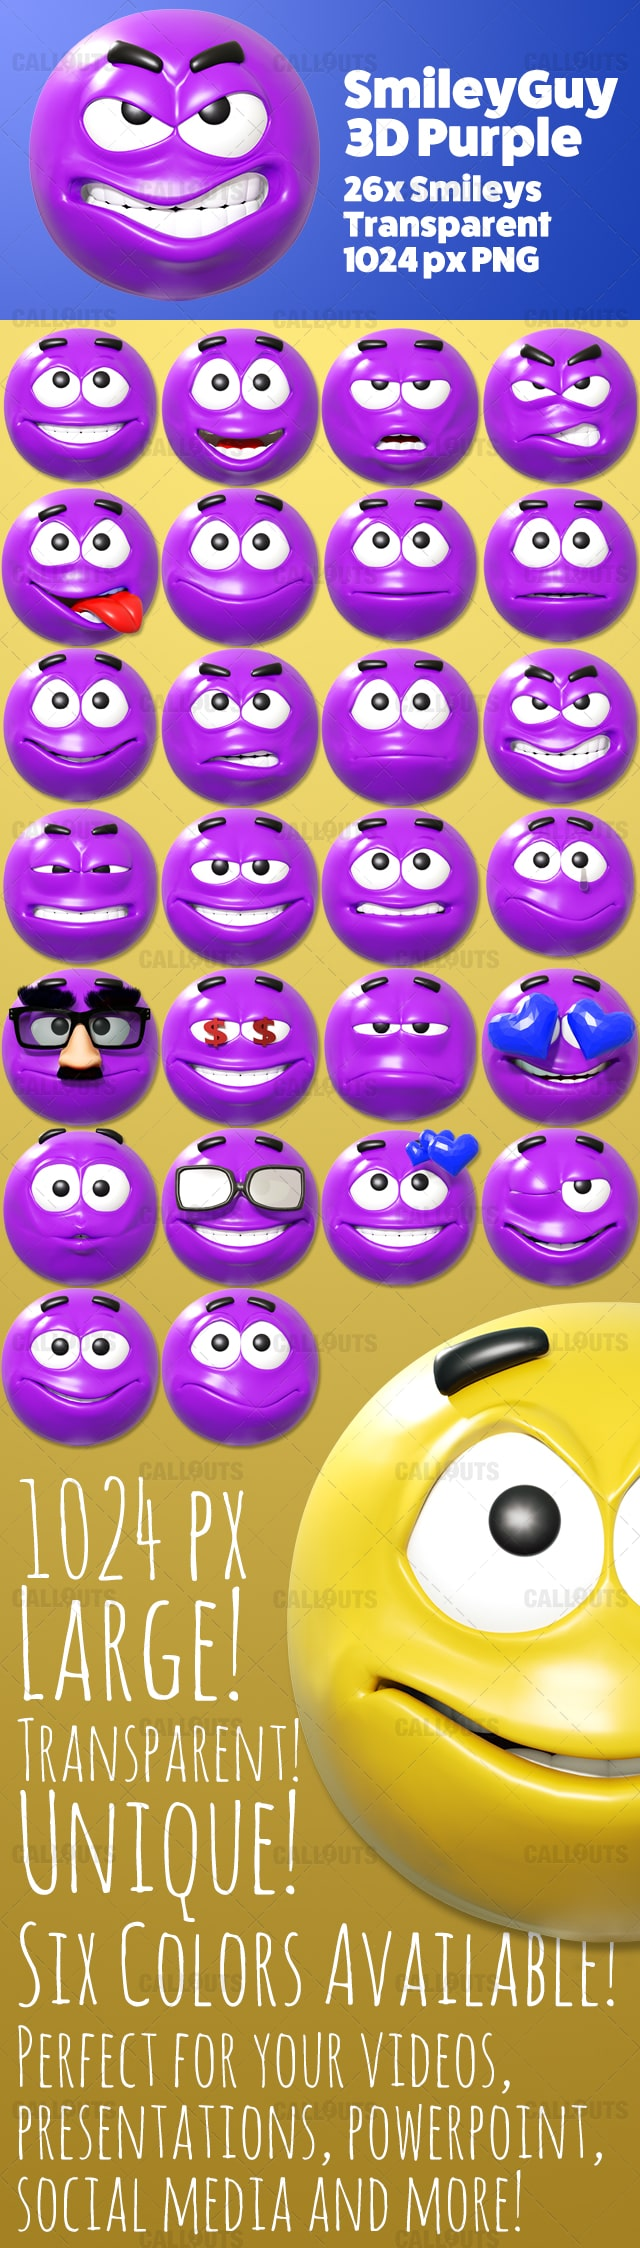 SmileyGuy 3D Purple